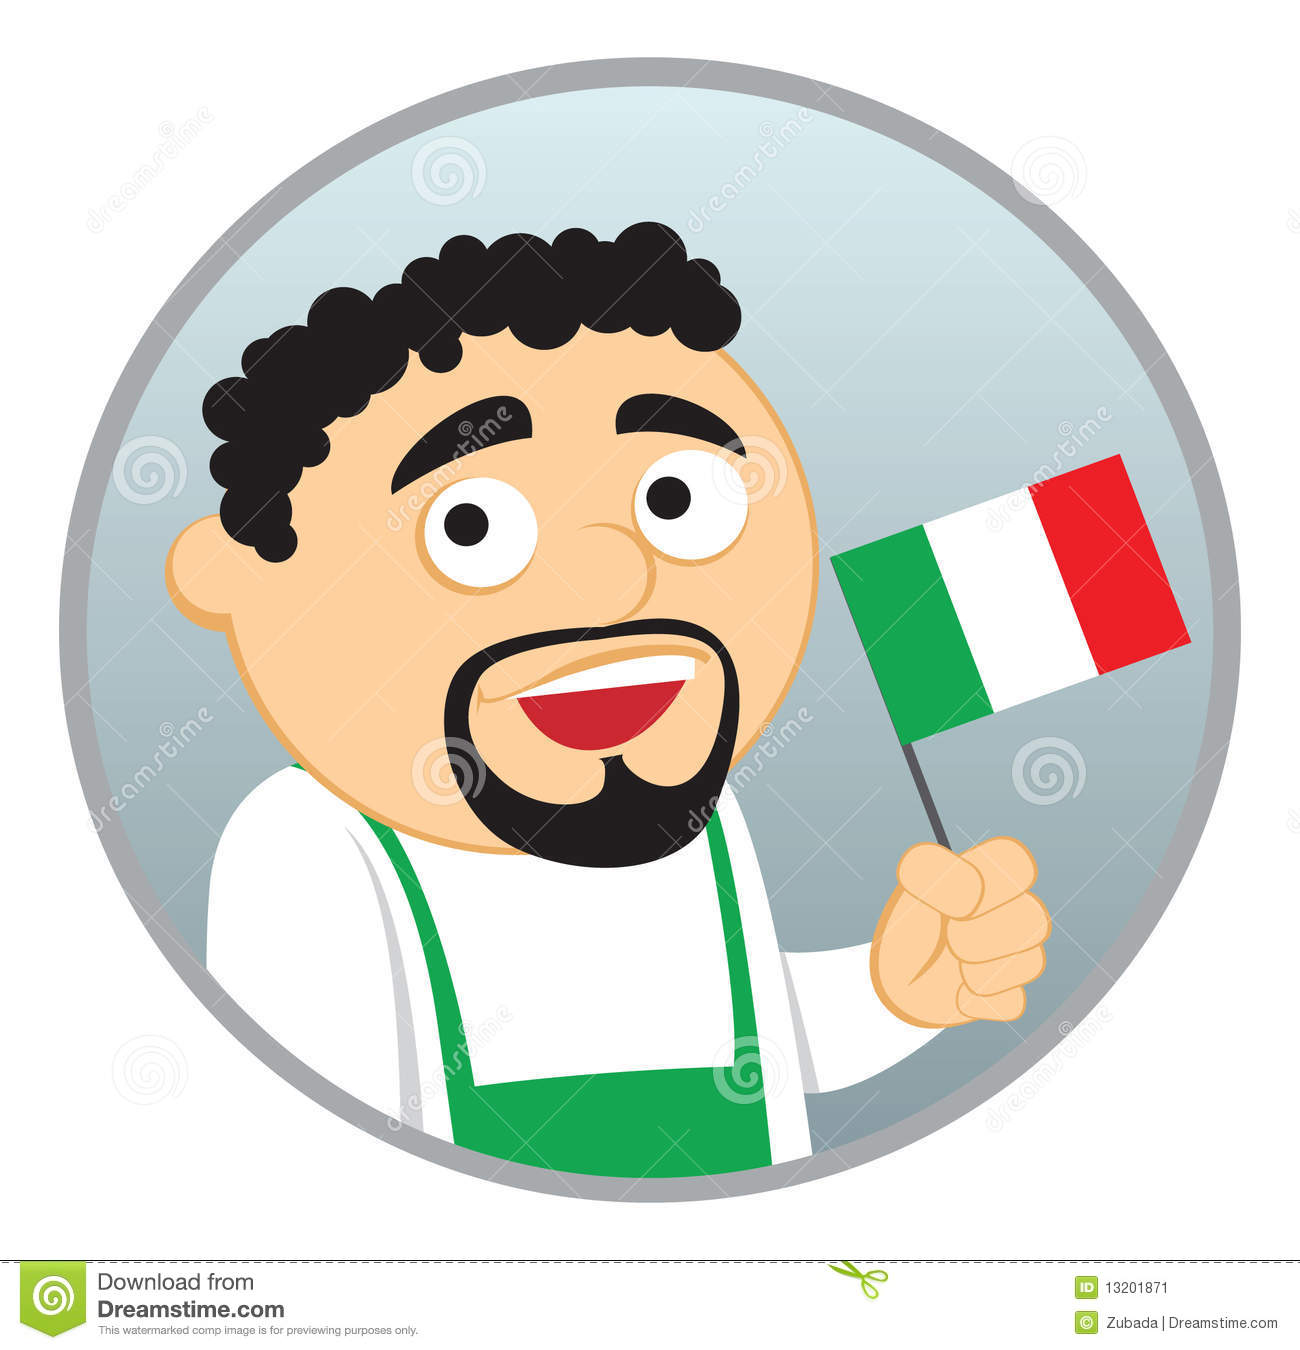 87 Year Old Man Italian Clipart 20 Free Cliparts